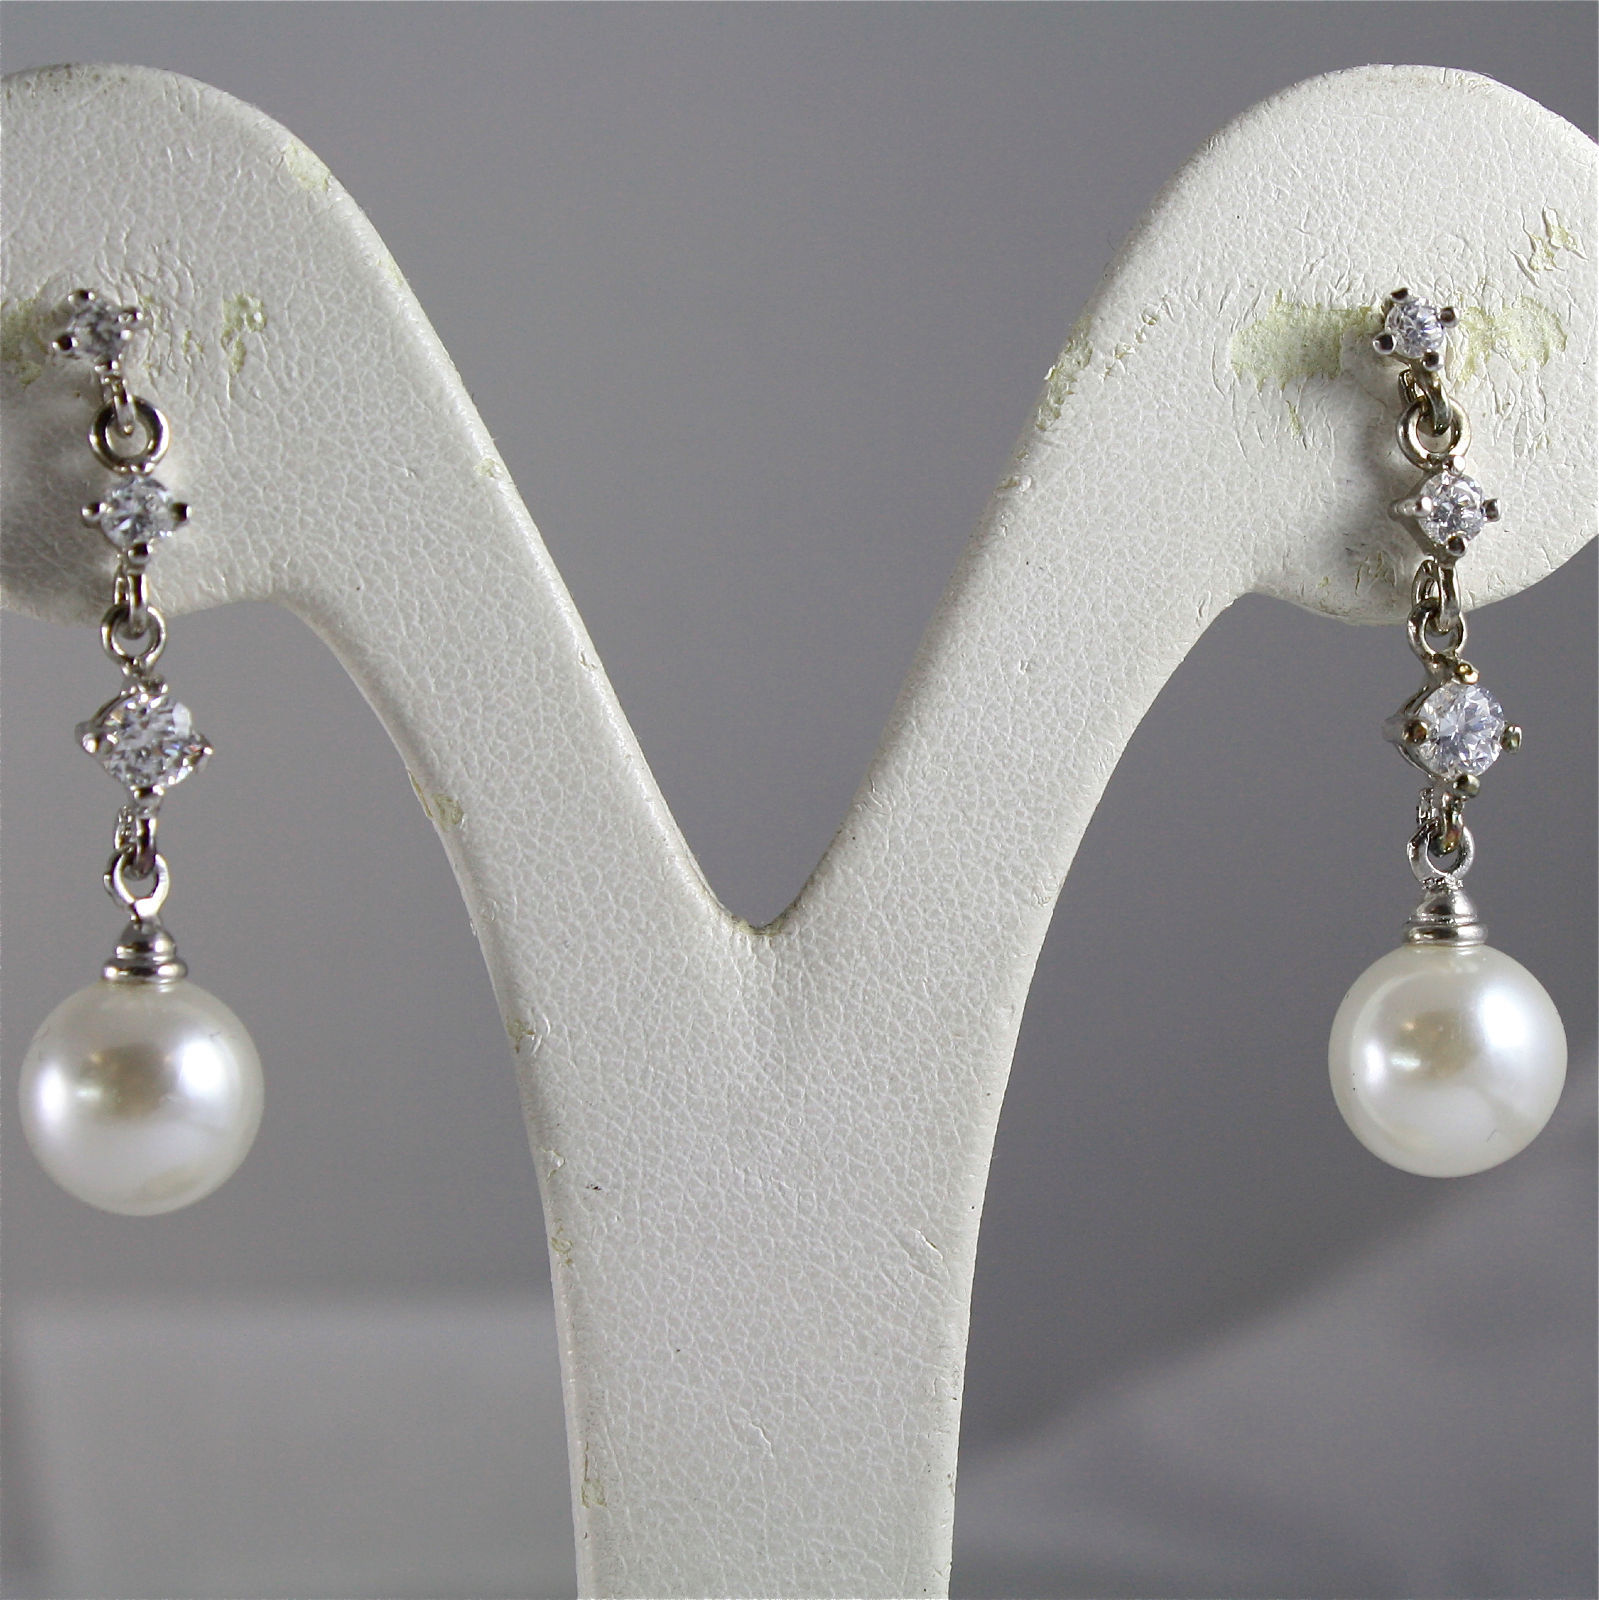 .925 RHODIUM SILVER EARRINGS, PENDANT, WHITE NATURAL PEARLS, ZIRCONIA